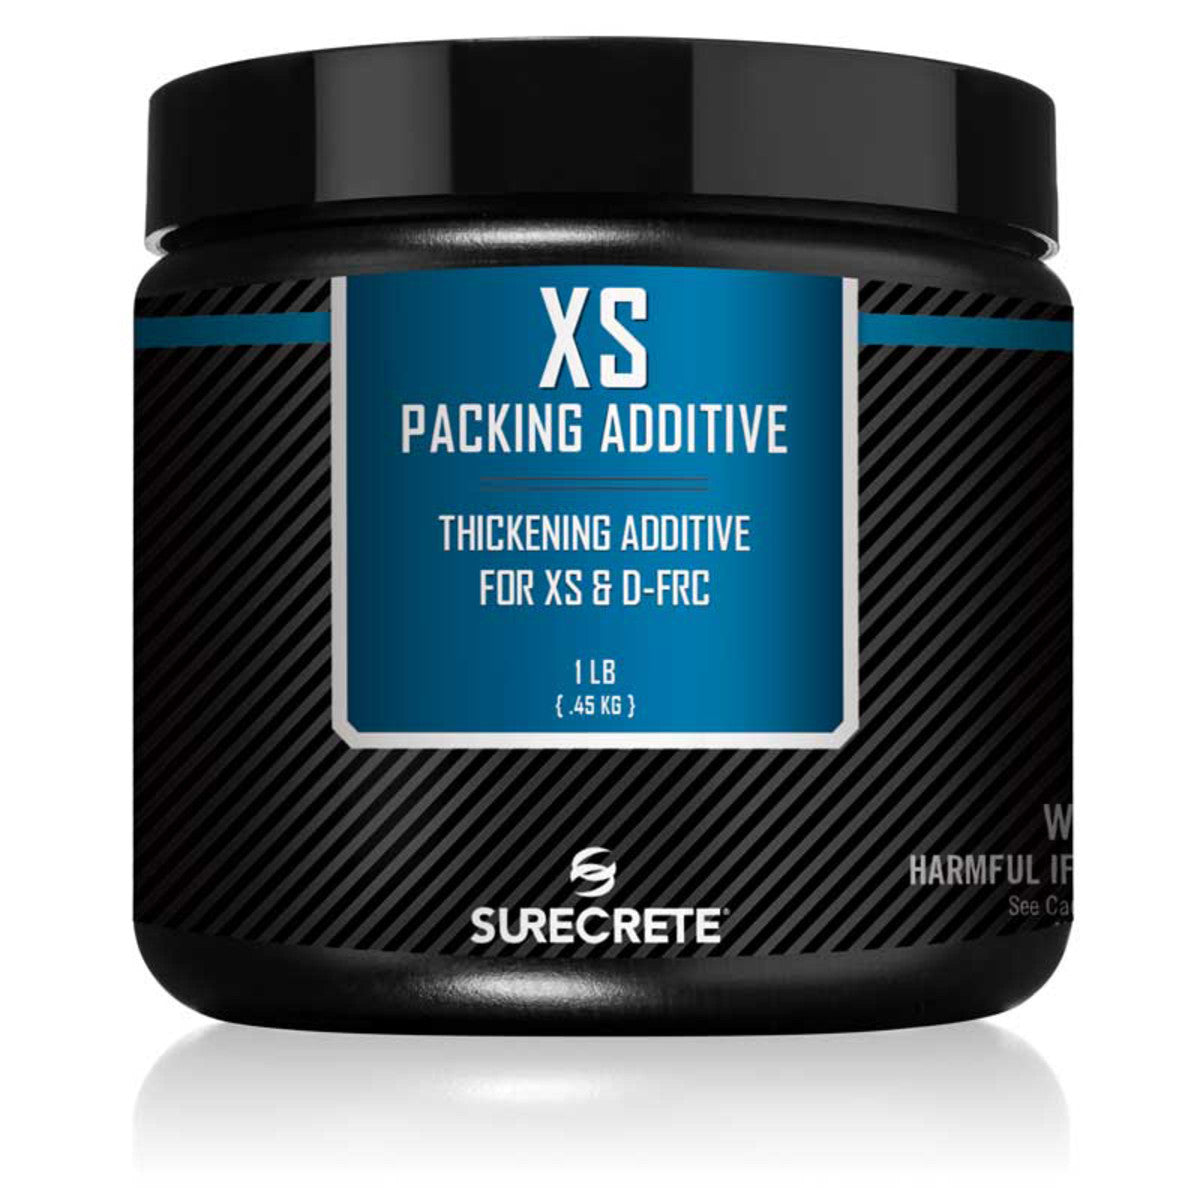 Surecrete Xtreme Series Packing Additive